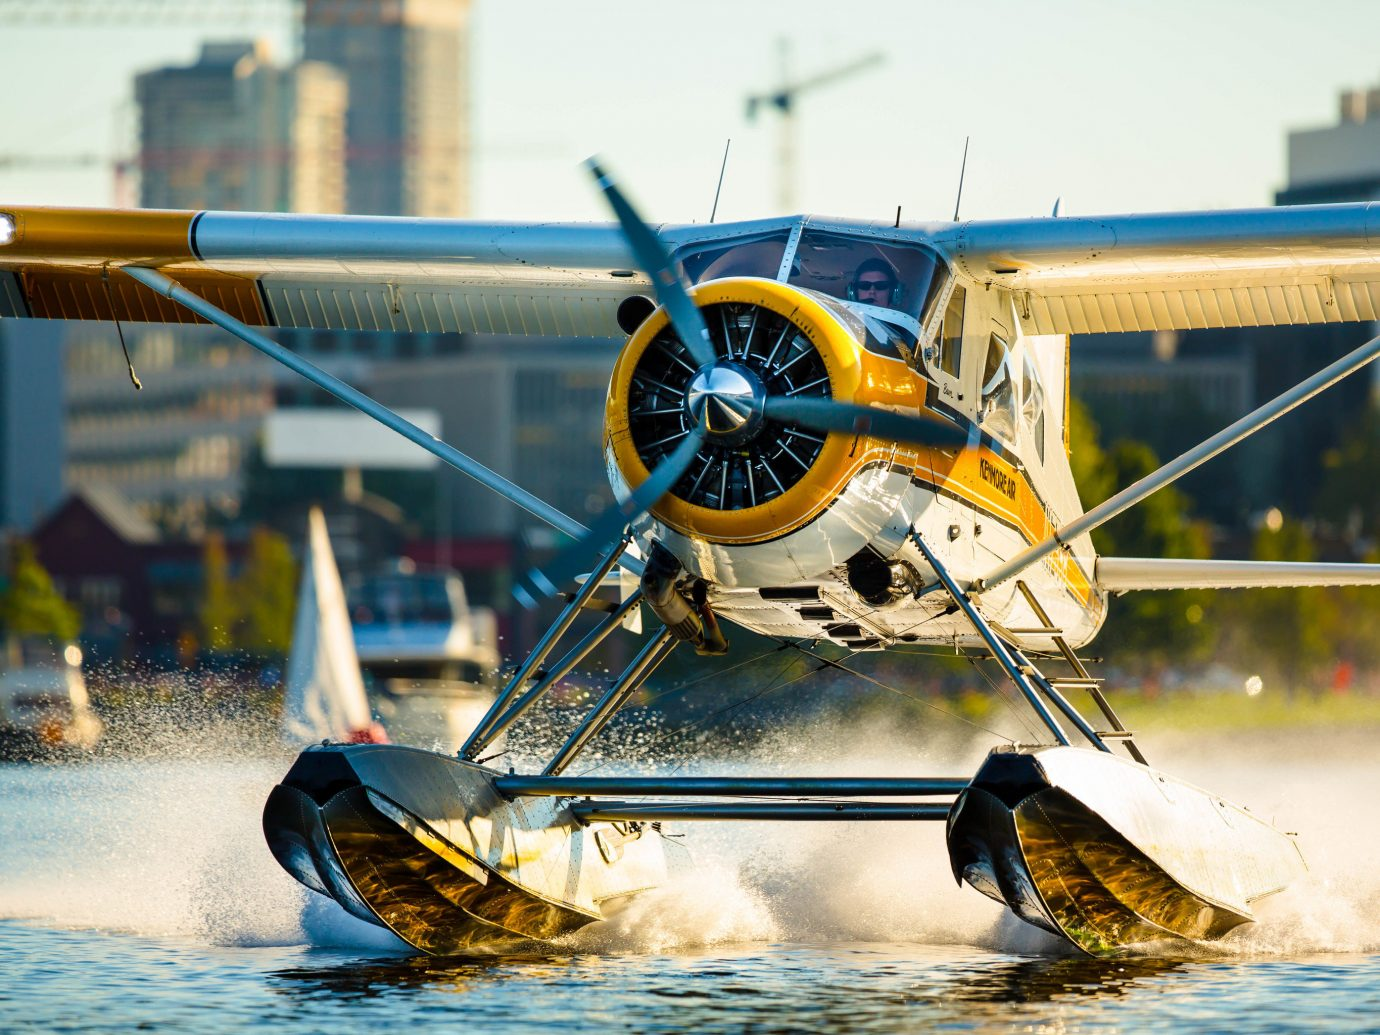 Trip Ideas sky plane outdoor water seaplane airplane aircraft aviation water transportation boating